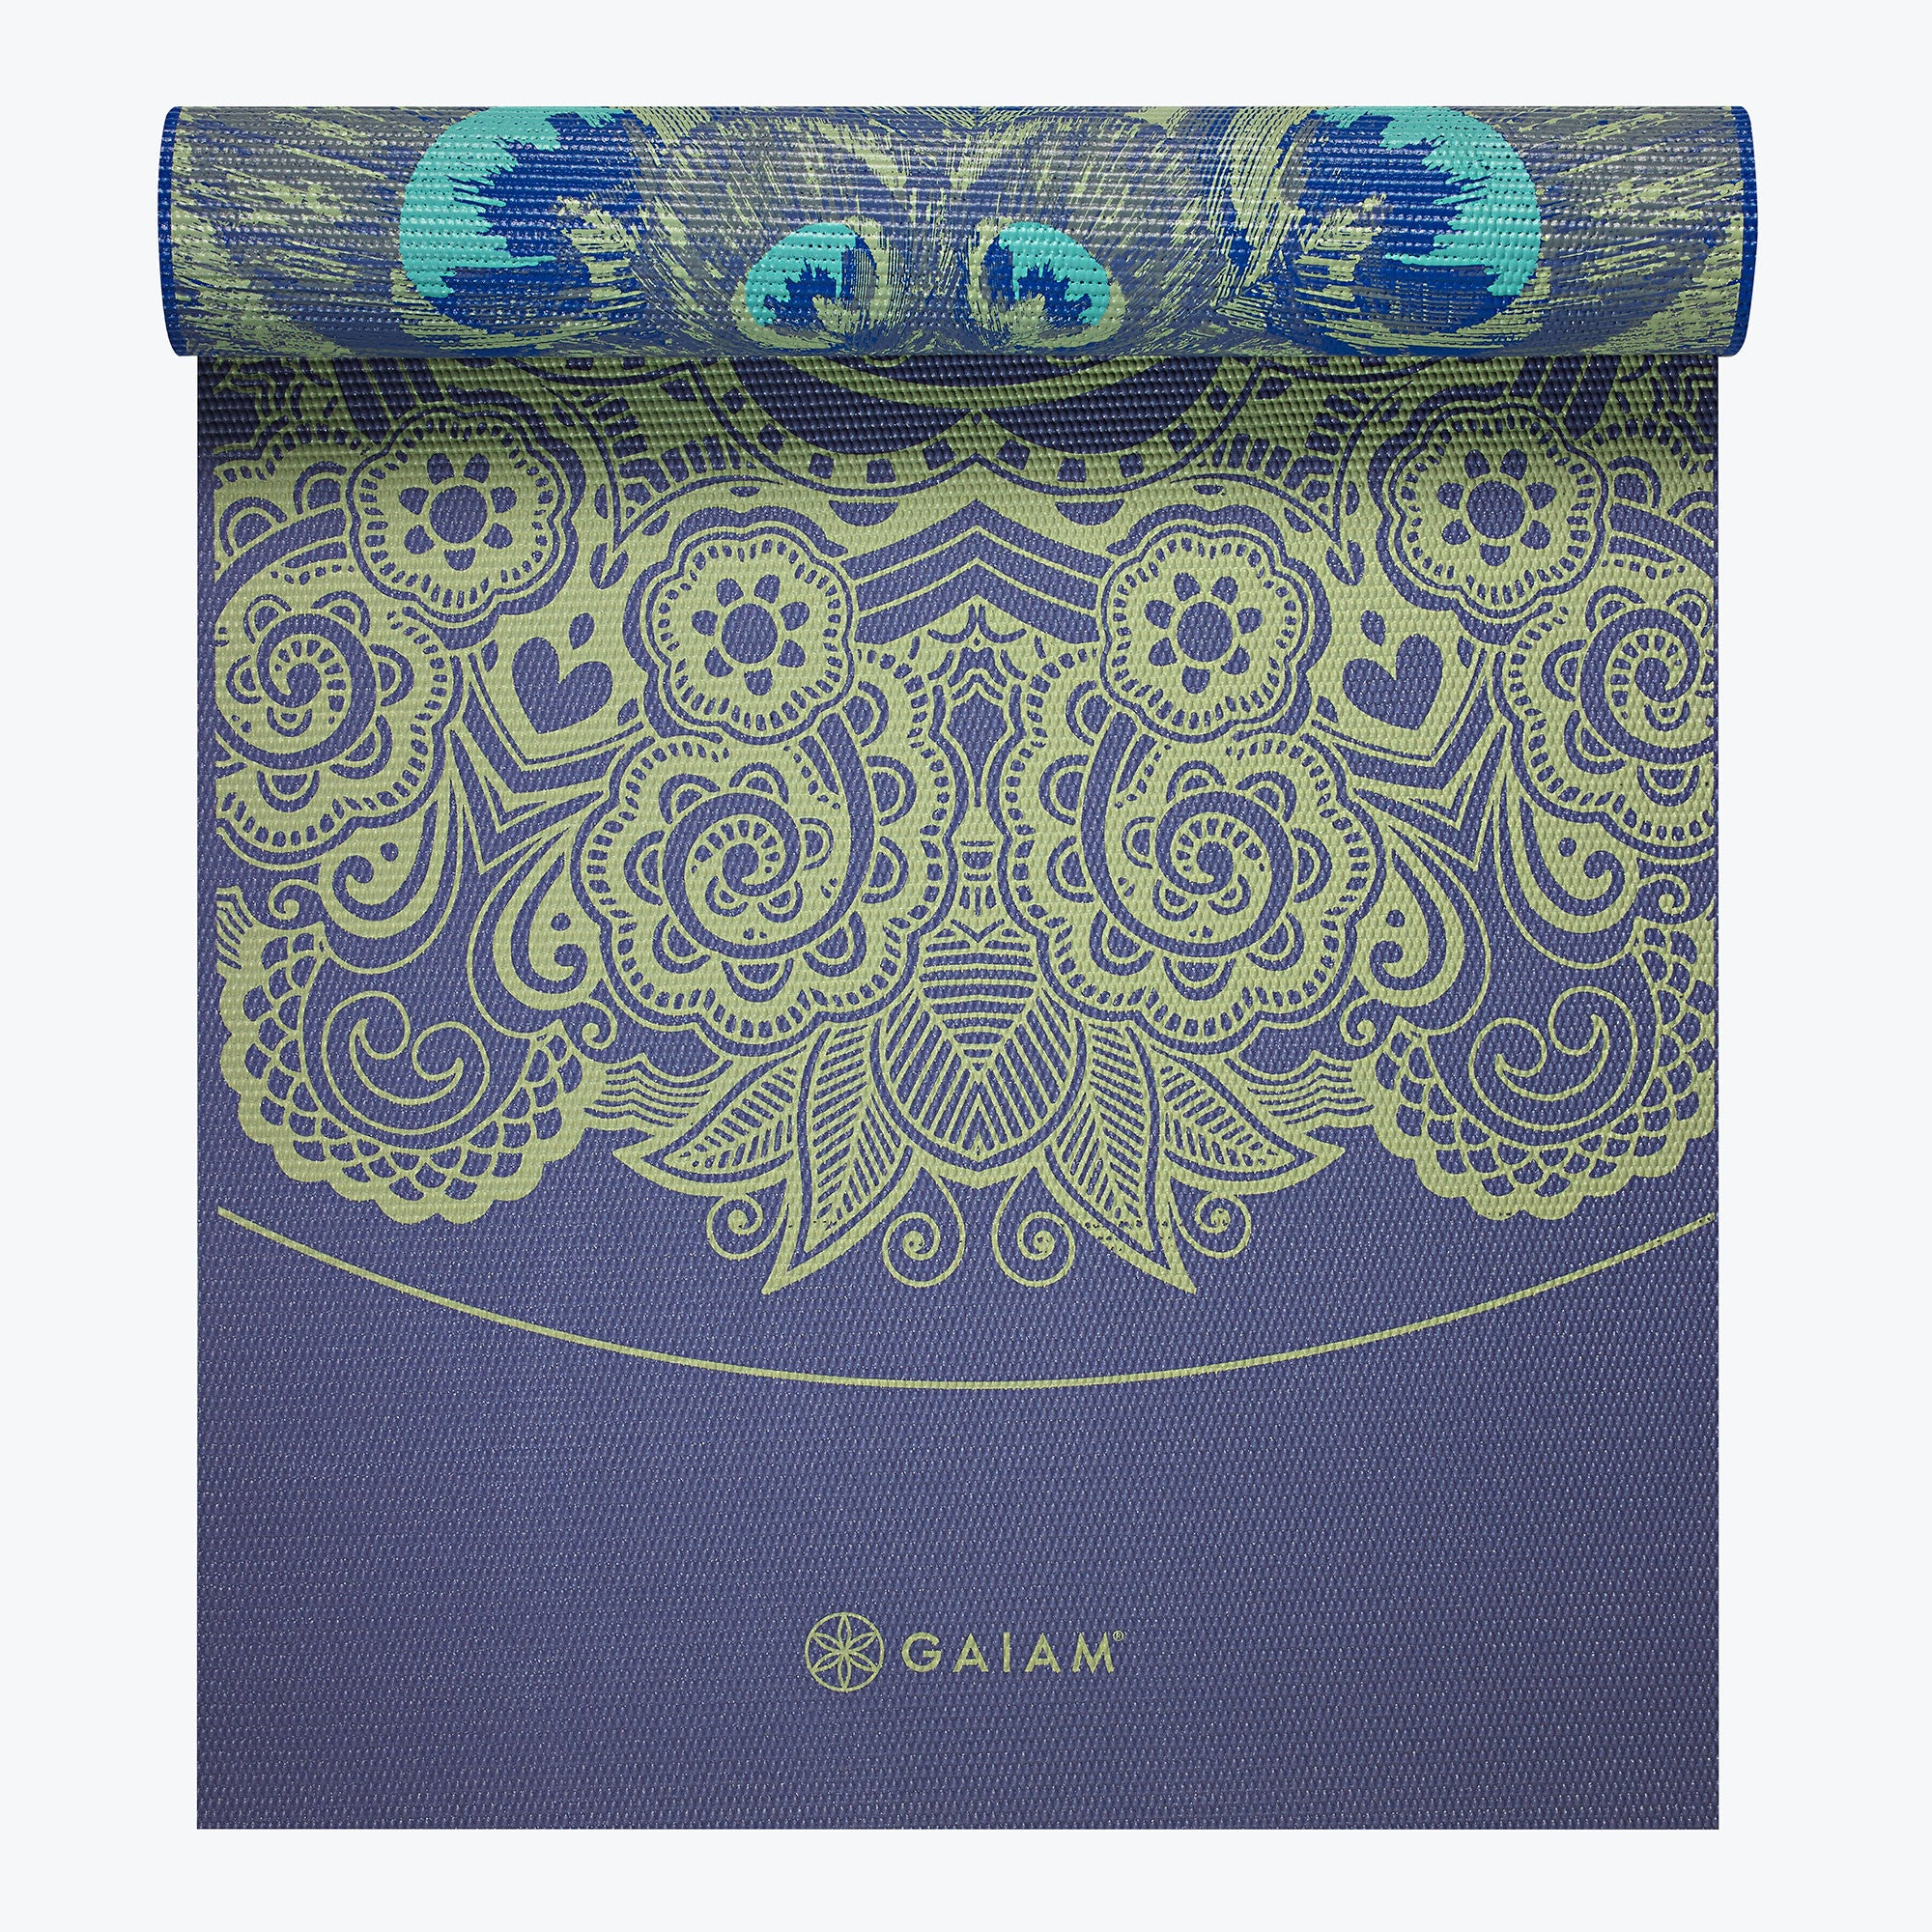 Reversible Peacock Lace Yoga Mat 6mm Gaiam